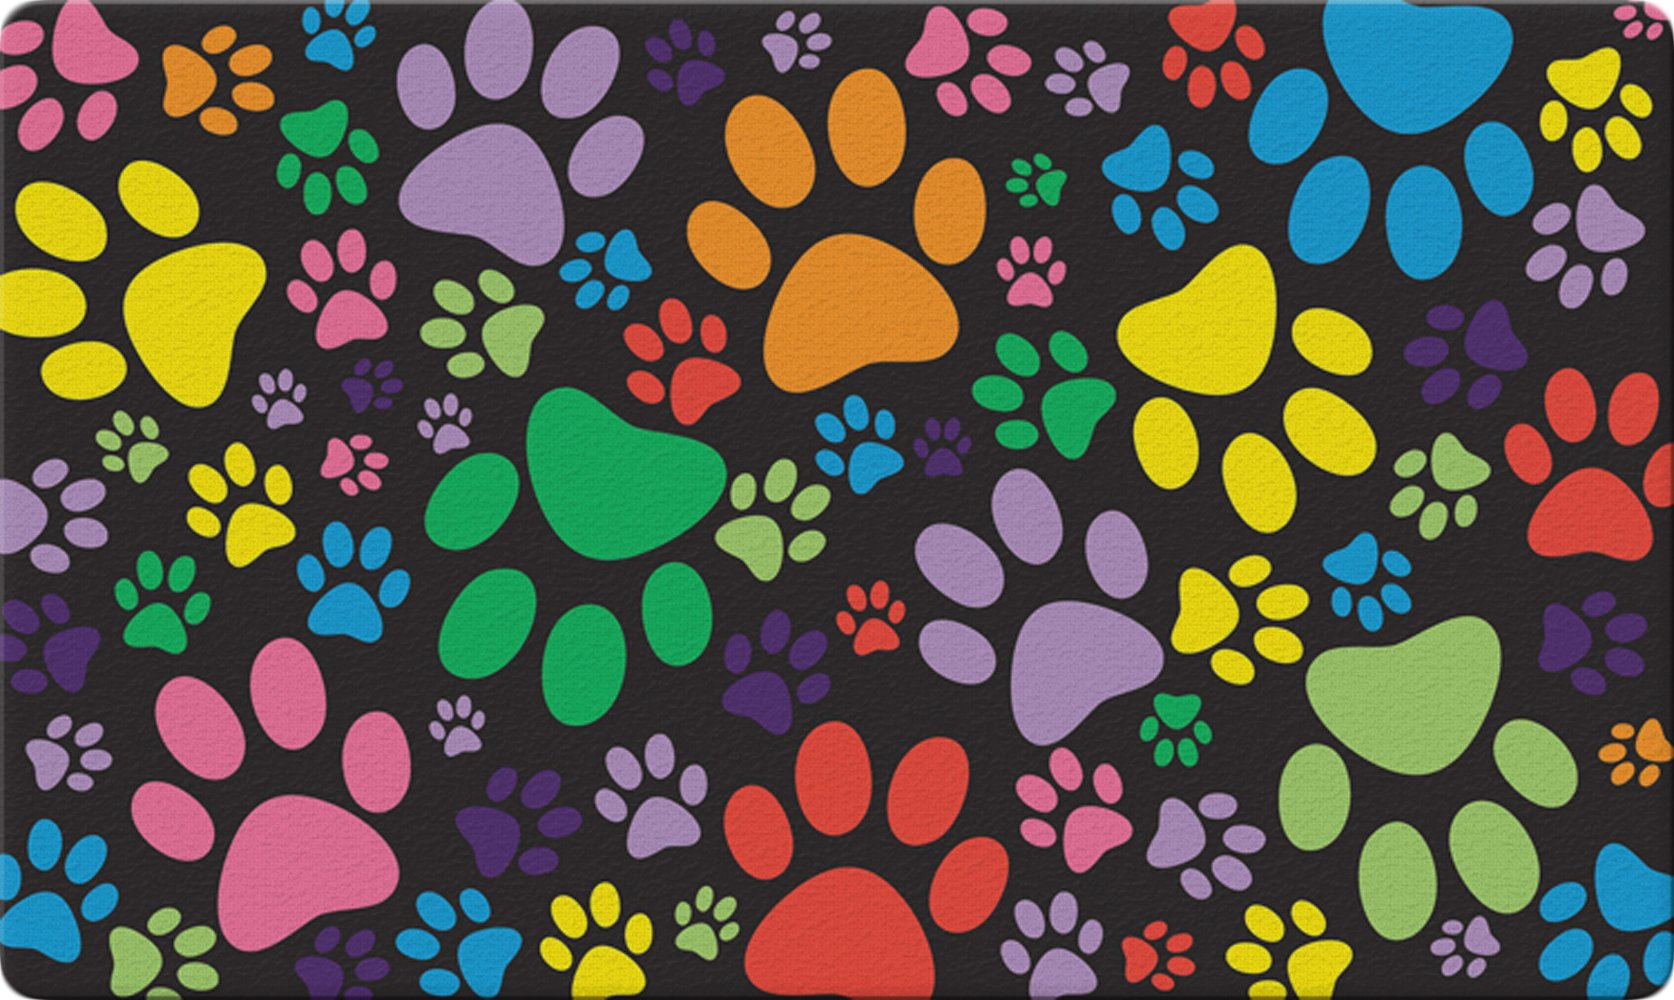 Toland Home Garden Puppy Paws 18 x 30 Inch Decorative Floor Mat Colorful Puppy Dog Kitty Cat Collage Doormat